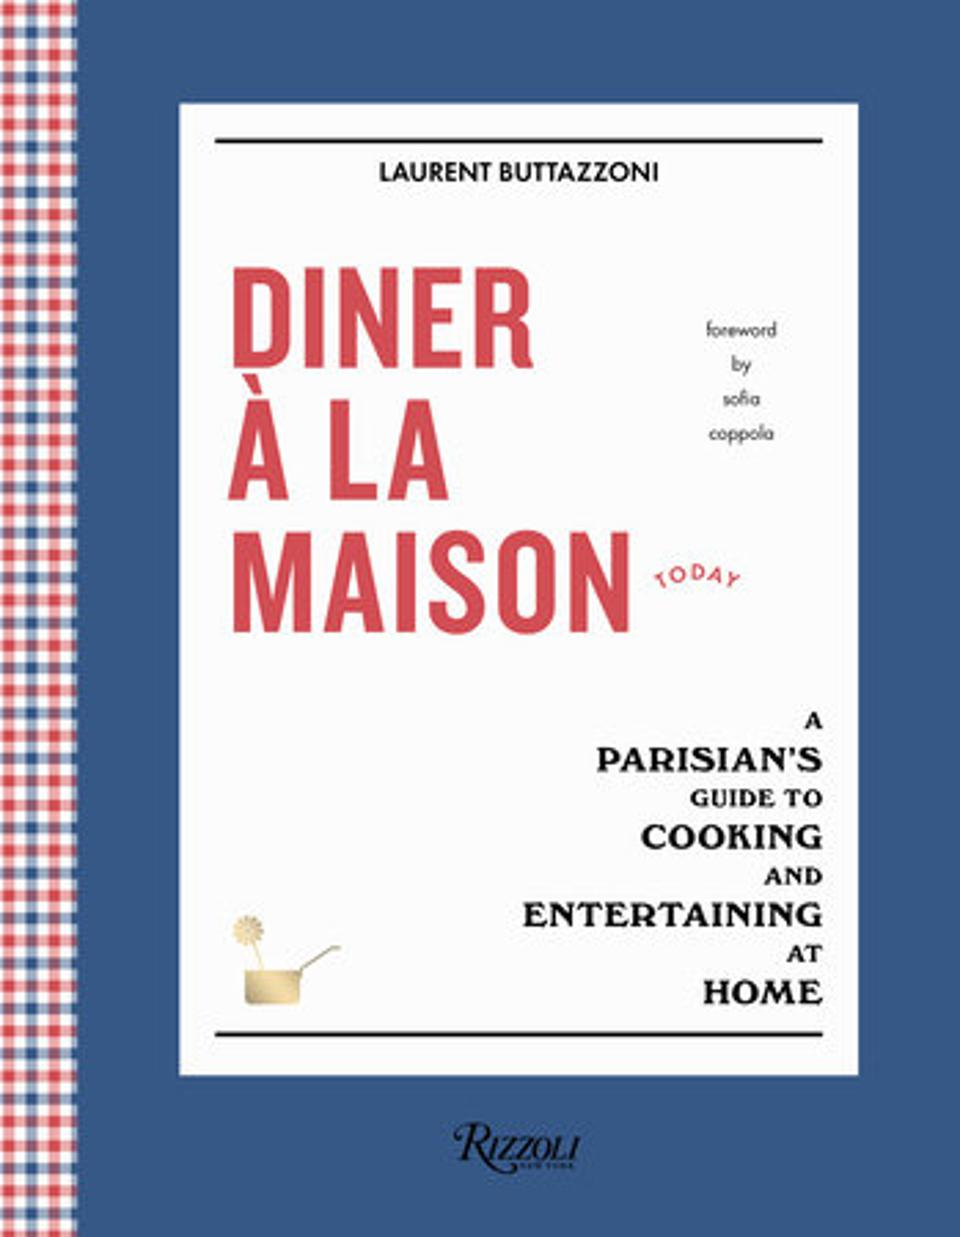 best french cookbooks 2019